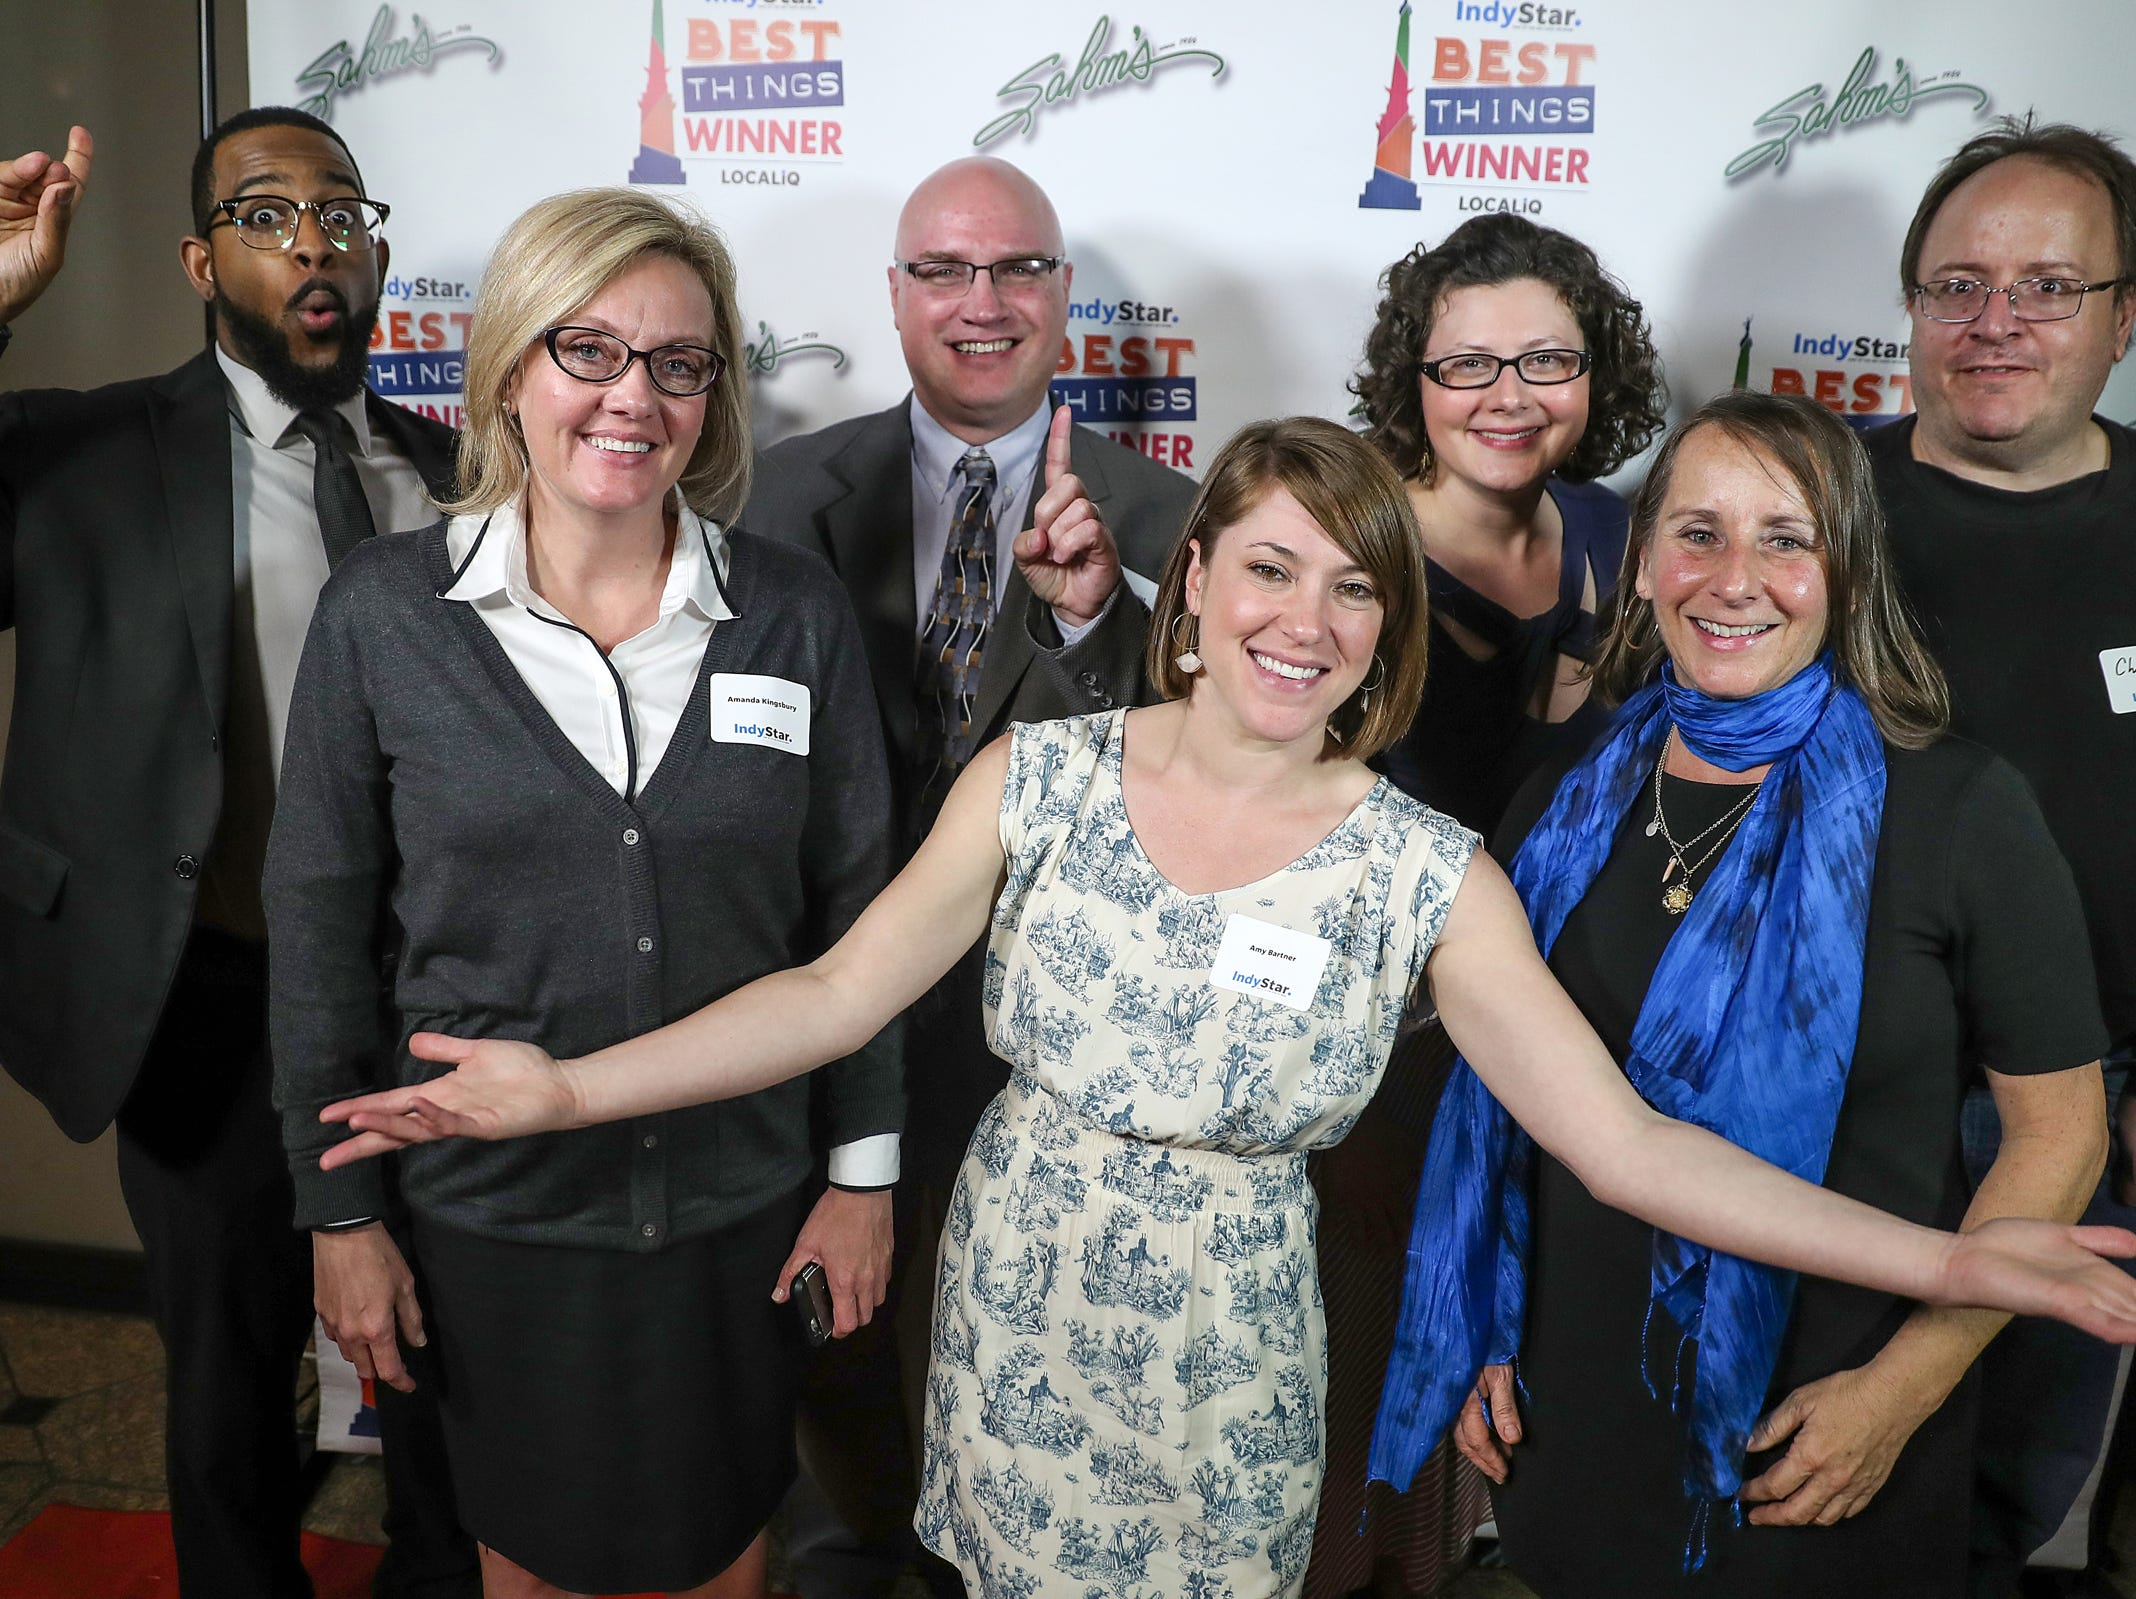 From left, IndyStar's Justin Mack, Amanda Kingsbury, Dave Lindquist, Amy Bartner, Domenica Bongiovanni, Liz Biro and Channing King pose for a picture during the inaugural Best Things Indy 2018 award ceremony, held by IndyStar at One America Tower in Indianapolis, Thursday, Sept. 27, 2018.